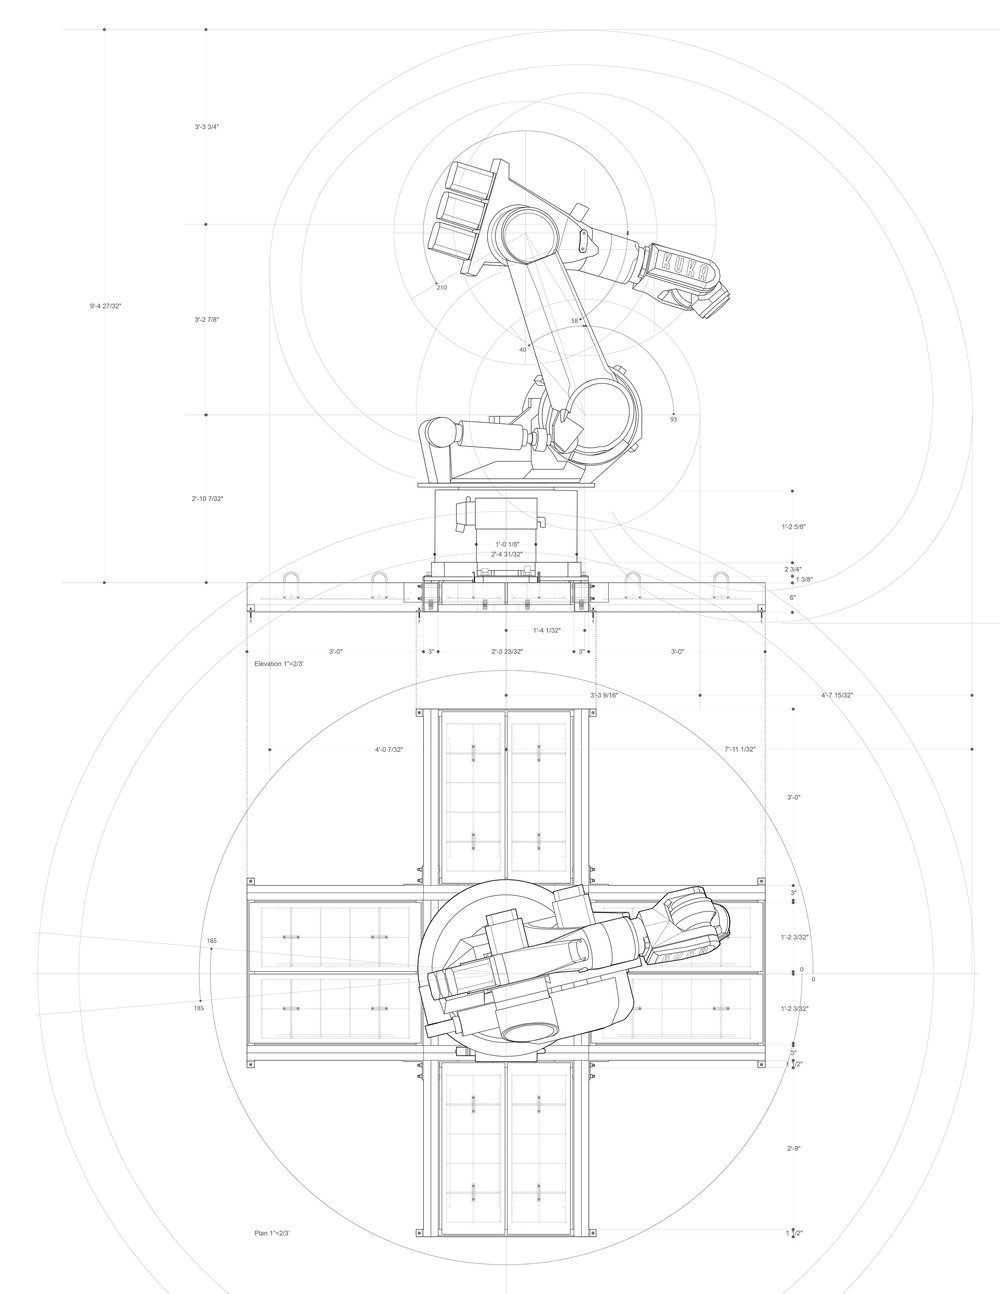 Kuka Kr-200 Elevation/ Plan